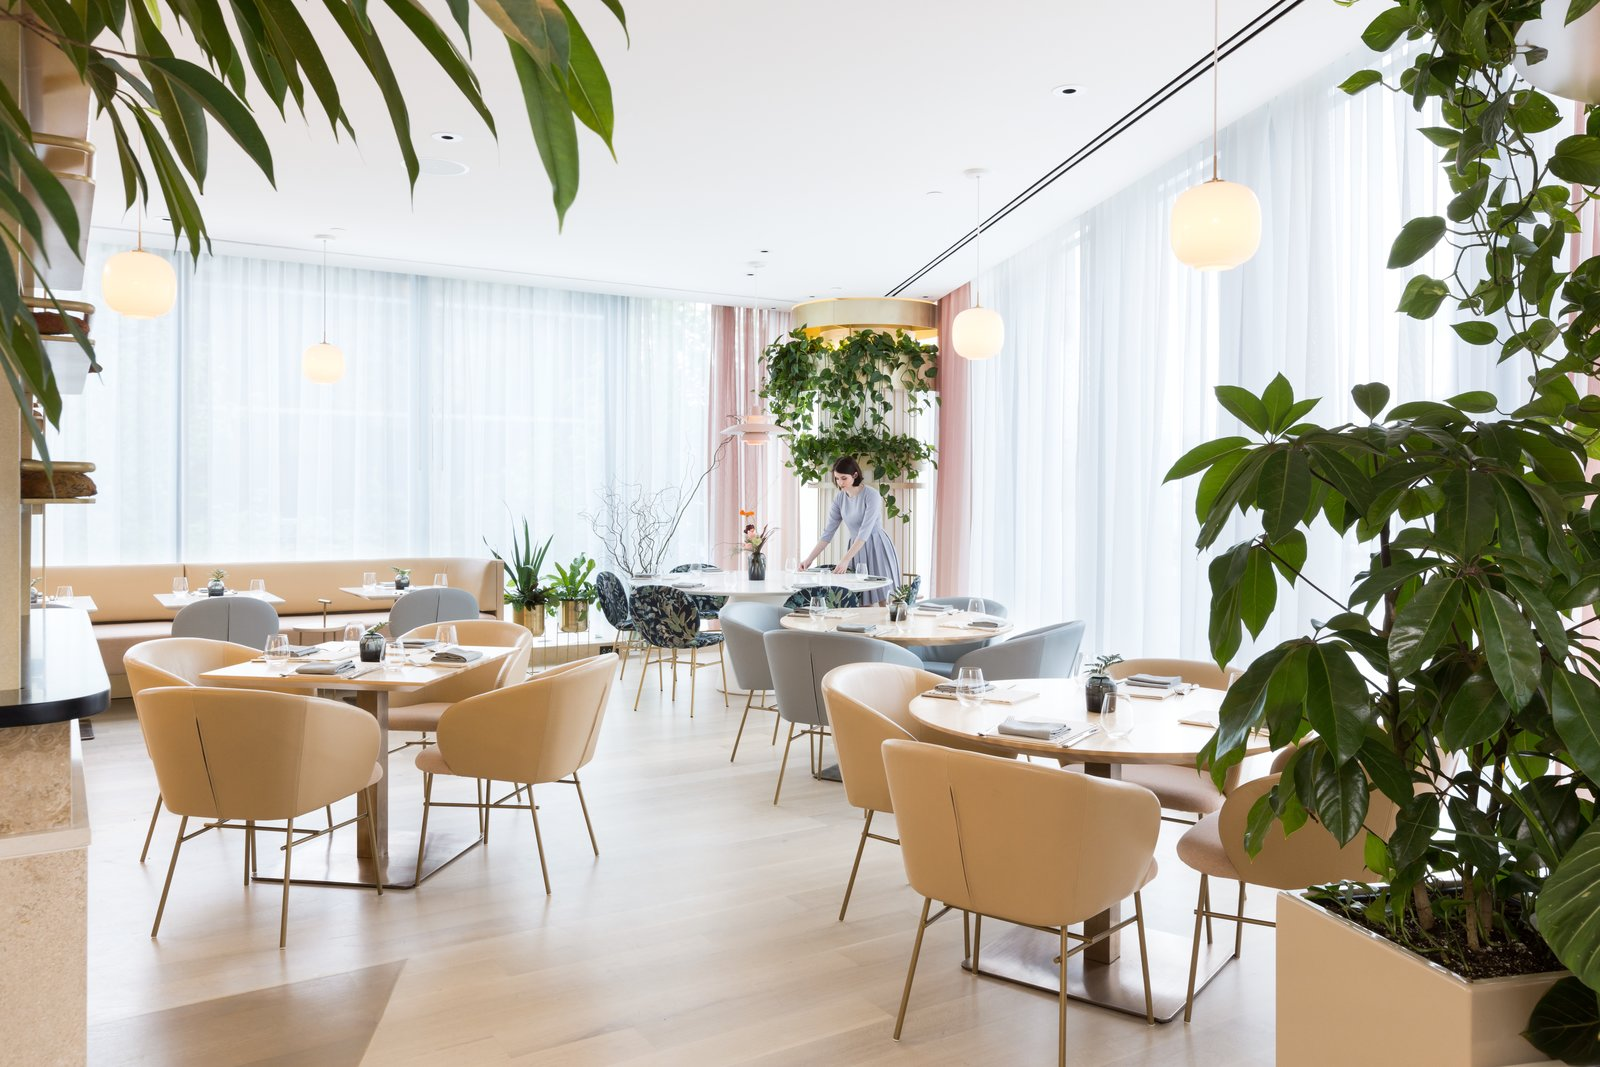 Vancouvers Botanist Restaurant Updates The Power Lunch